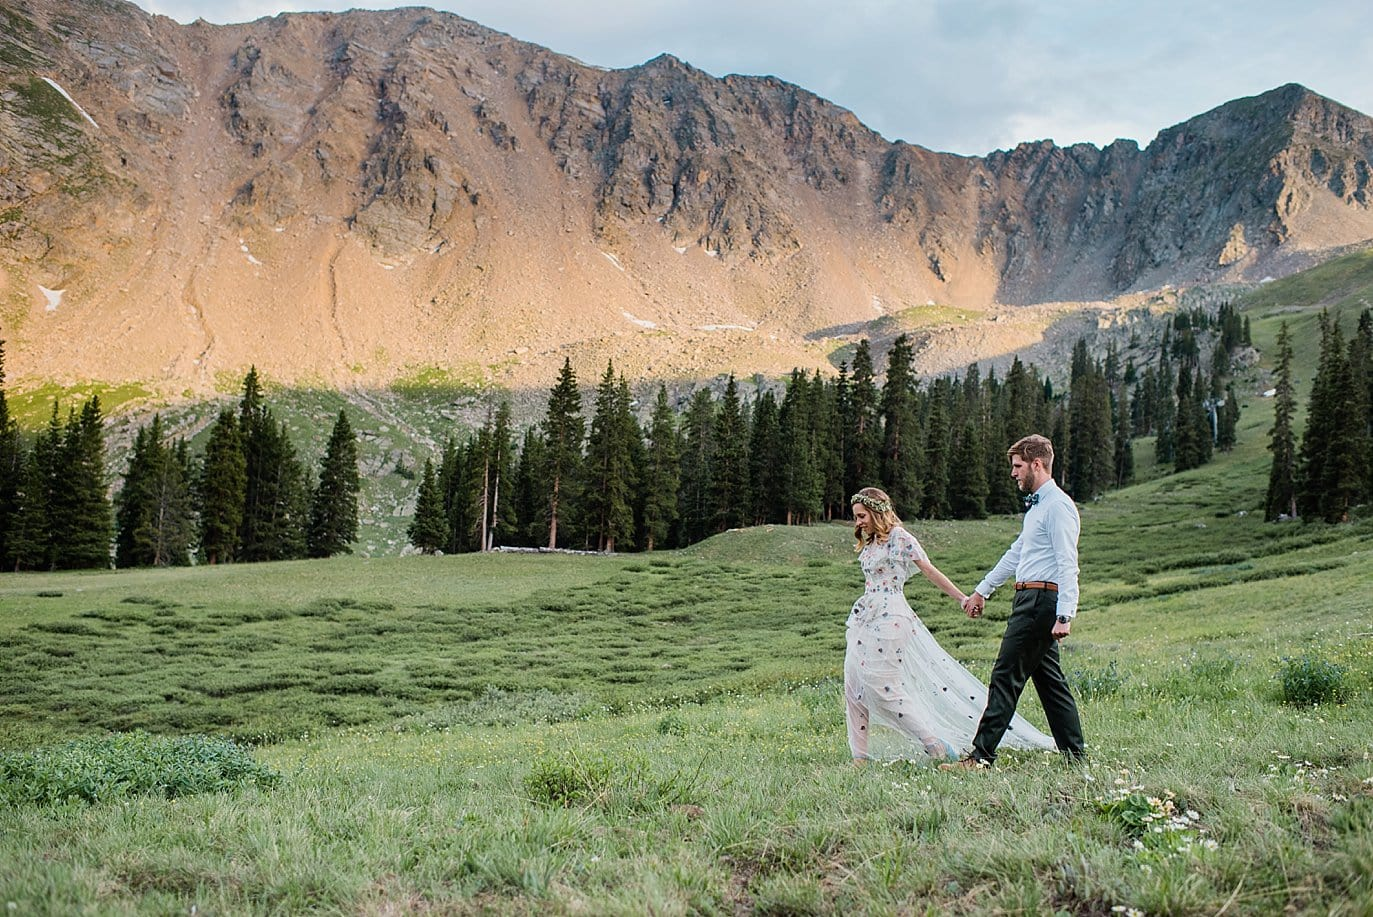 bride and groom outdoors at top of Arapahoe Basin at sunset alpenglow at Arapahoe Basin wedding by Vail wedding photographer